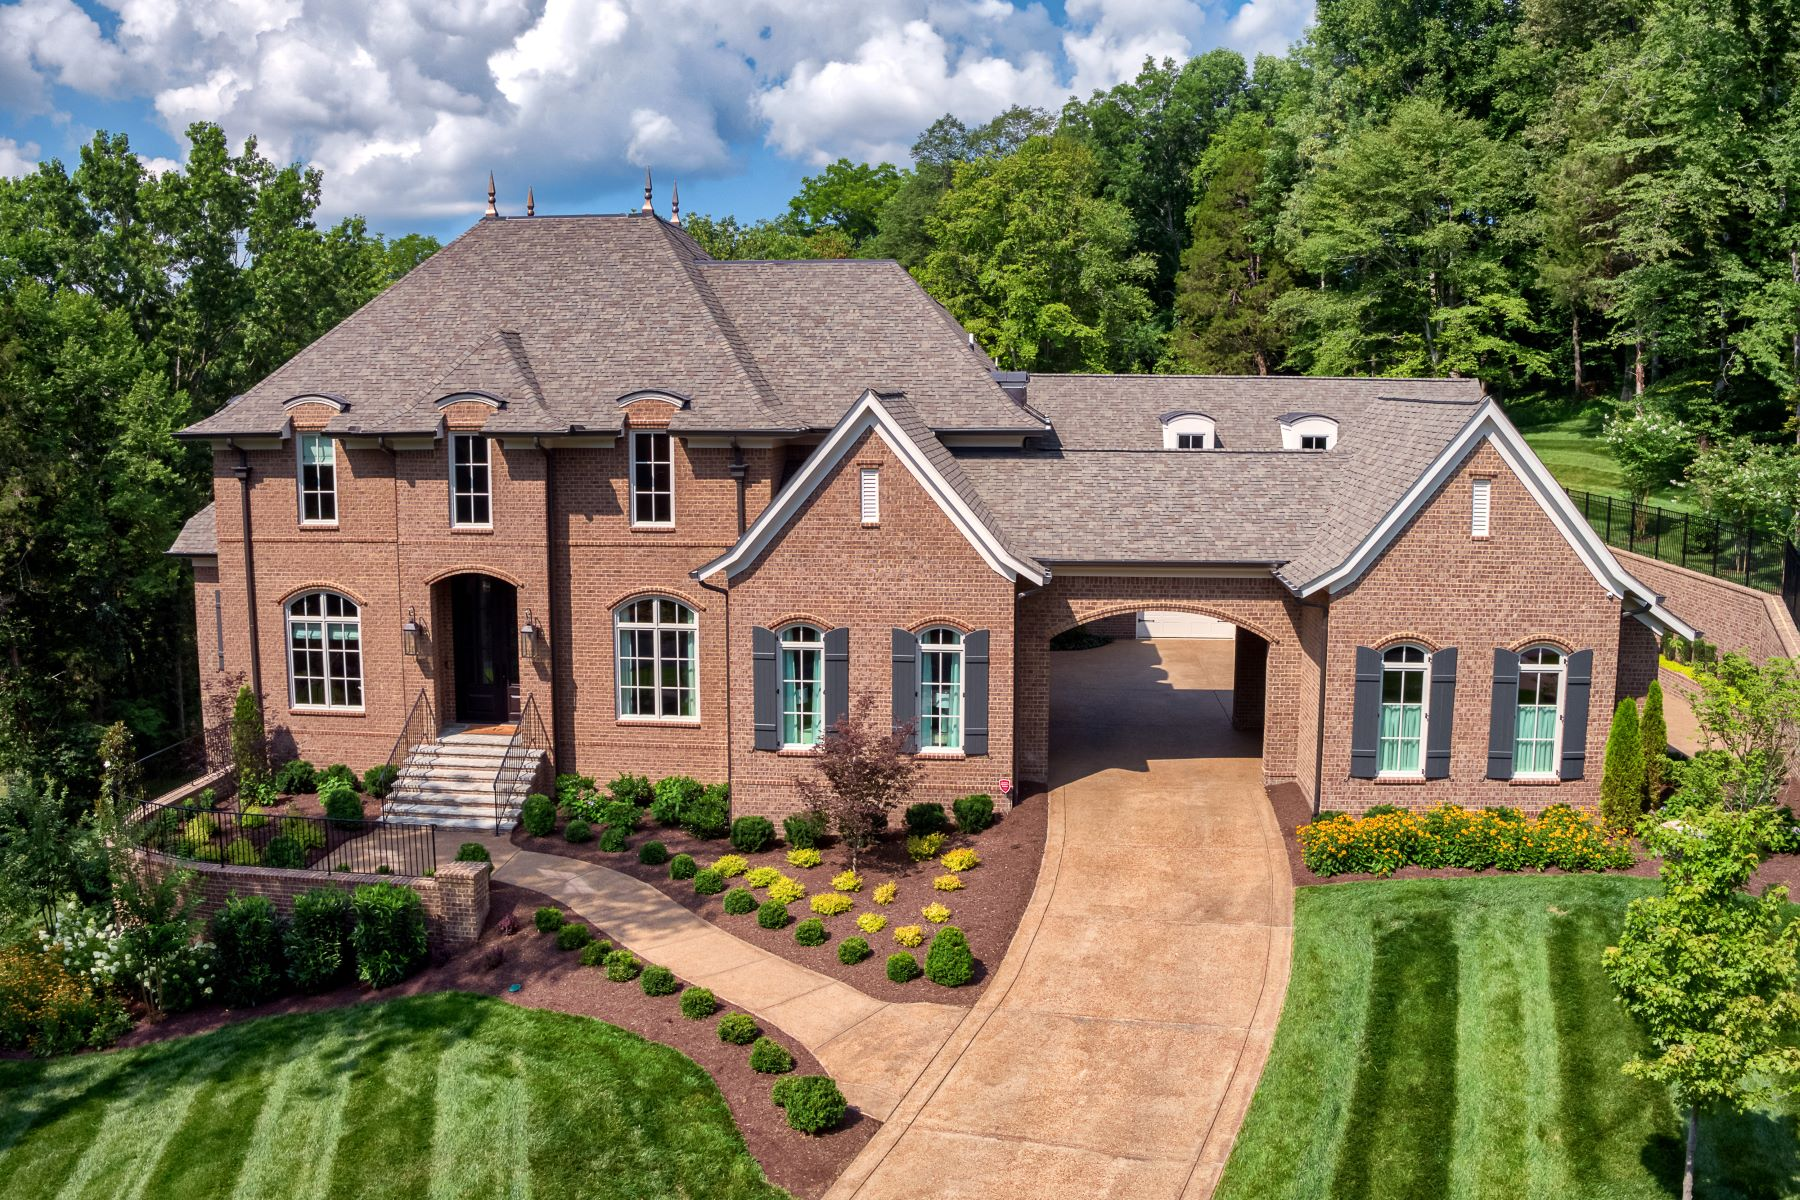 single family homes for Sale at Simplistic, Elegant and Timeless! 12 Camel Back Court Brentwood, Tennessee 37027 United States